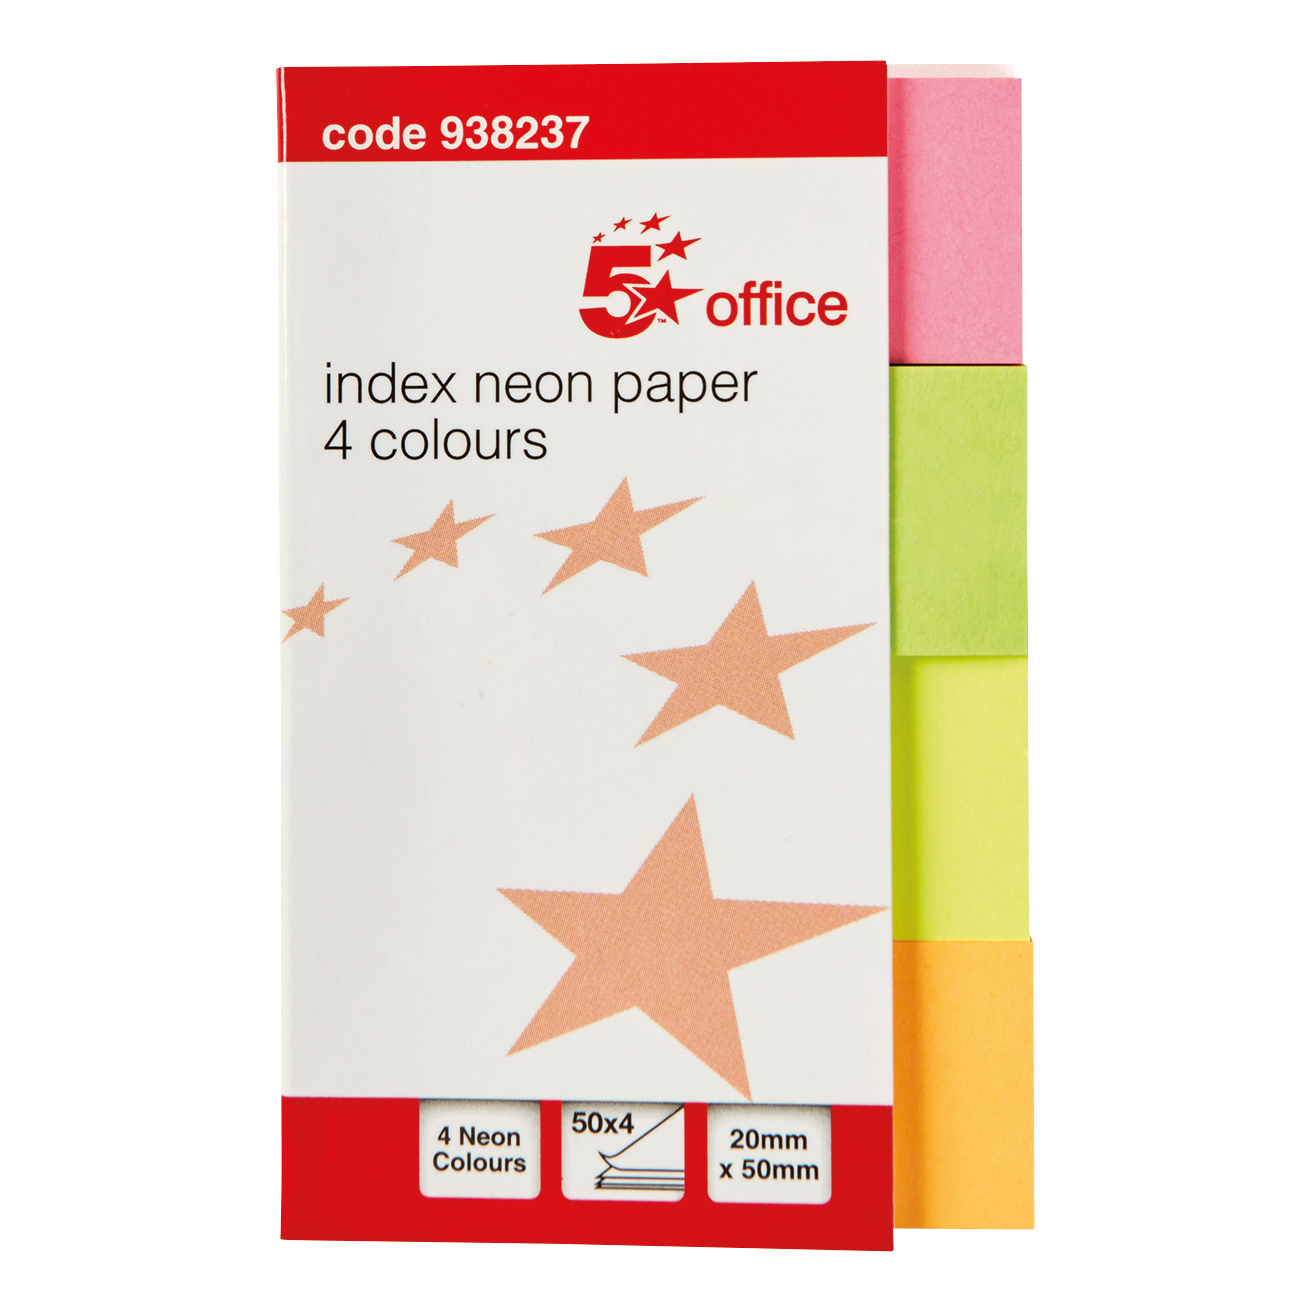 Tabs 5 Star Office Index Neon Paper Page Markers 20x50mm 50 Sheets per Colour Assorted Pack 5